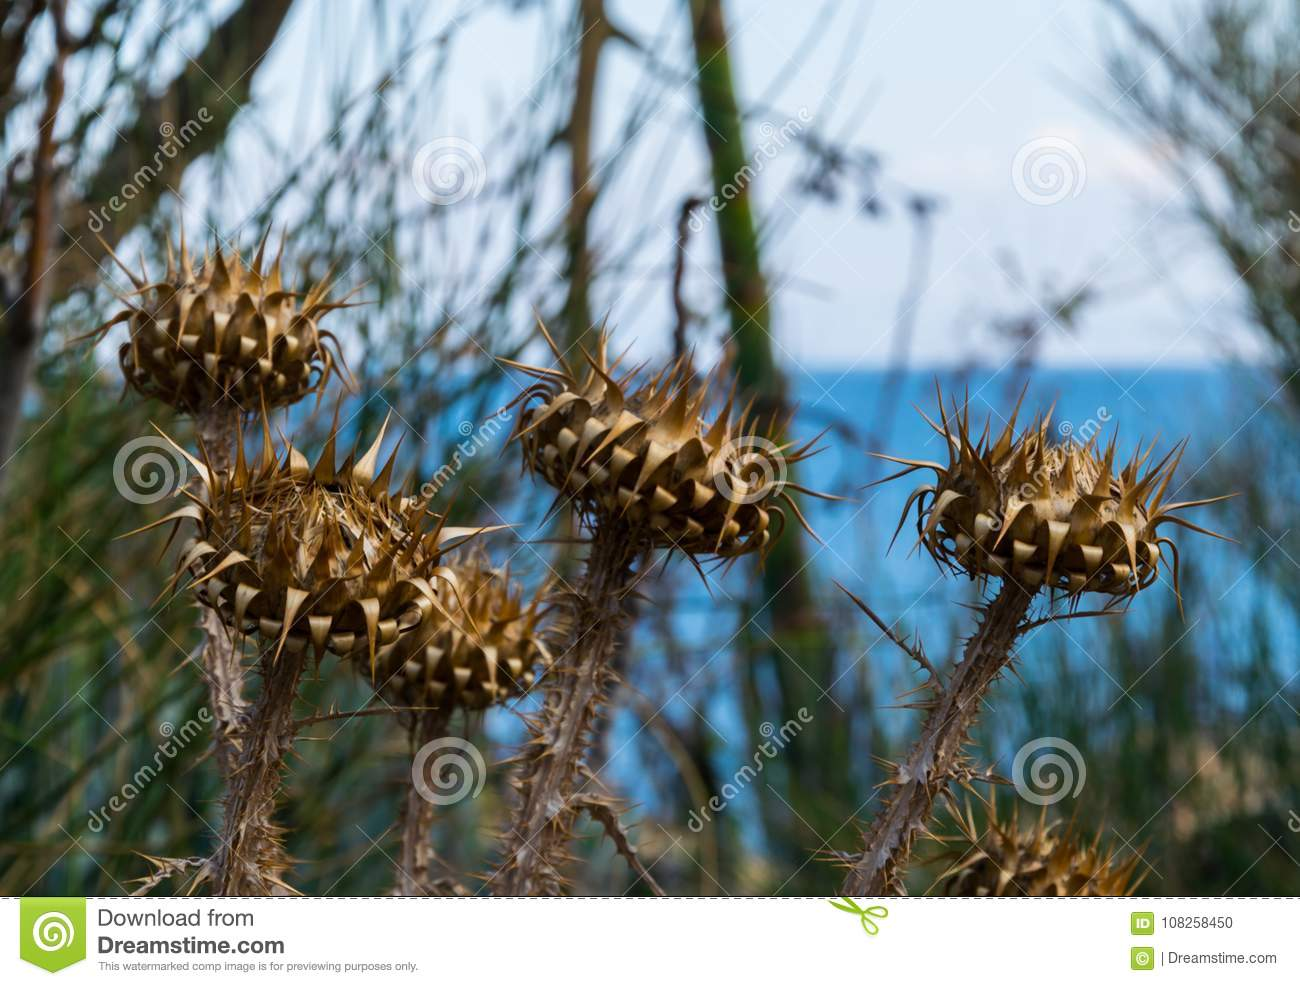 A few mediterranean withered plants